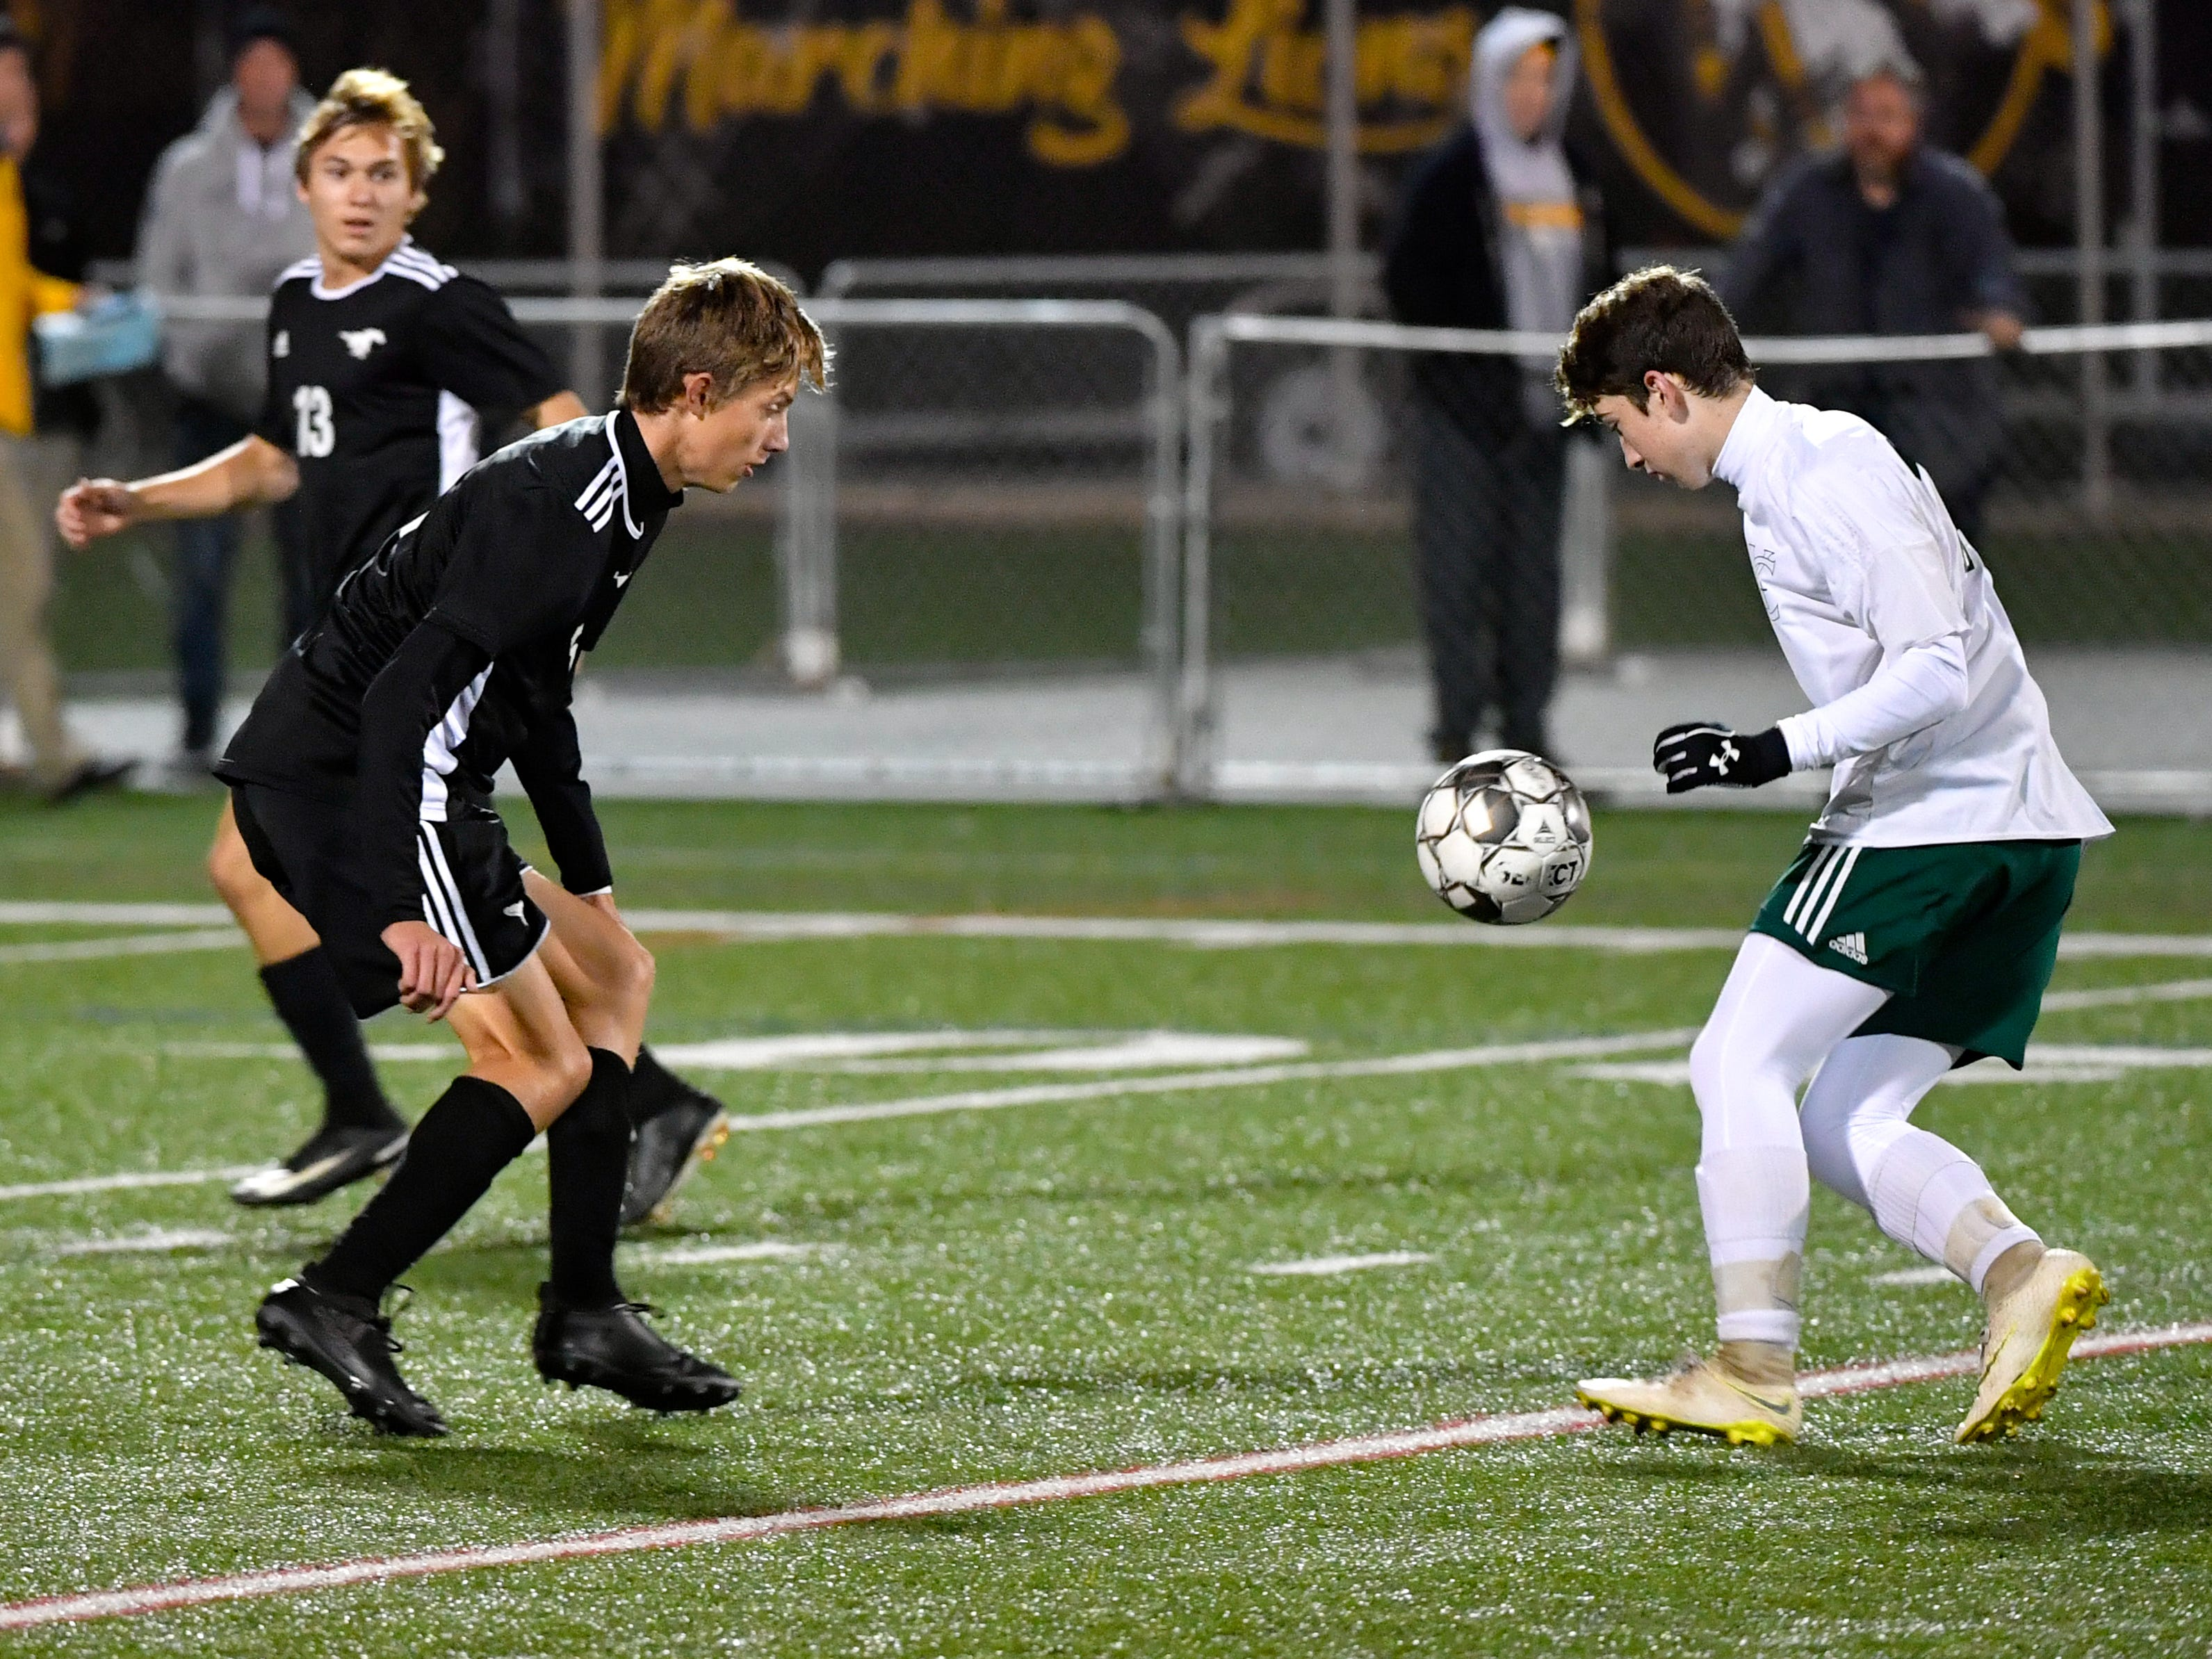 South Western's Dominic Barrett (5), left, defends York Catholic's Dylan Staub (14), right, during the boys soccer game between South Western and York Catholic, October 16, 2018. The Mustangs beat the Irish 2-1.